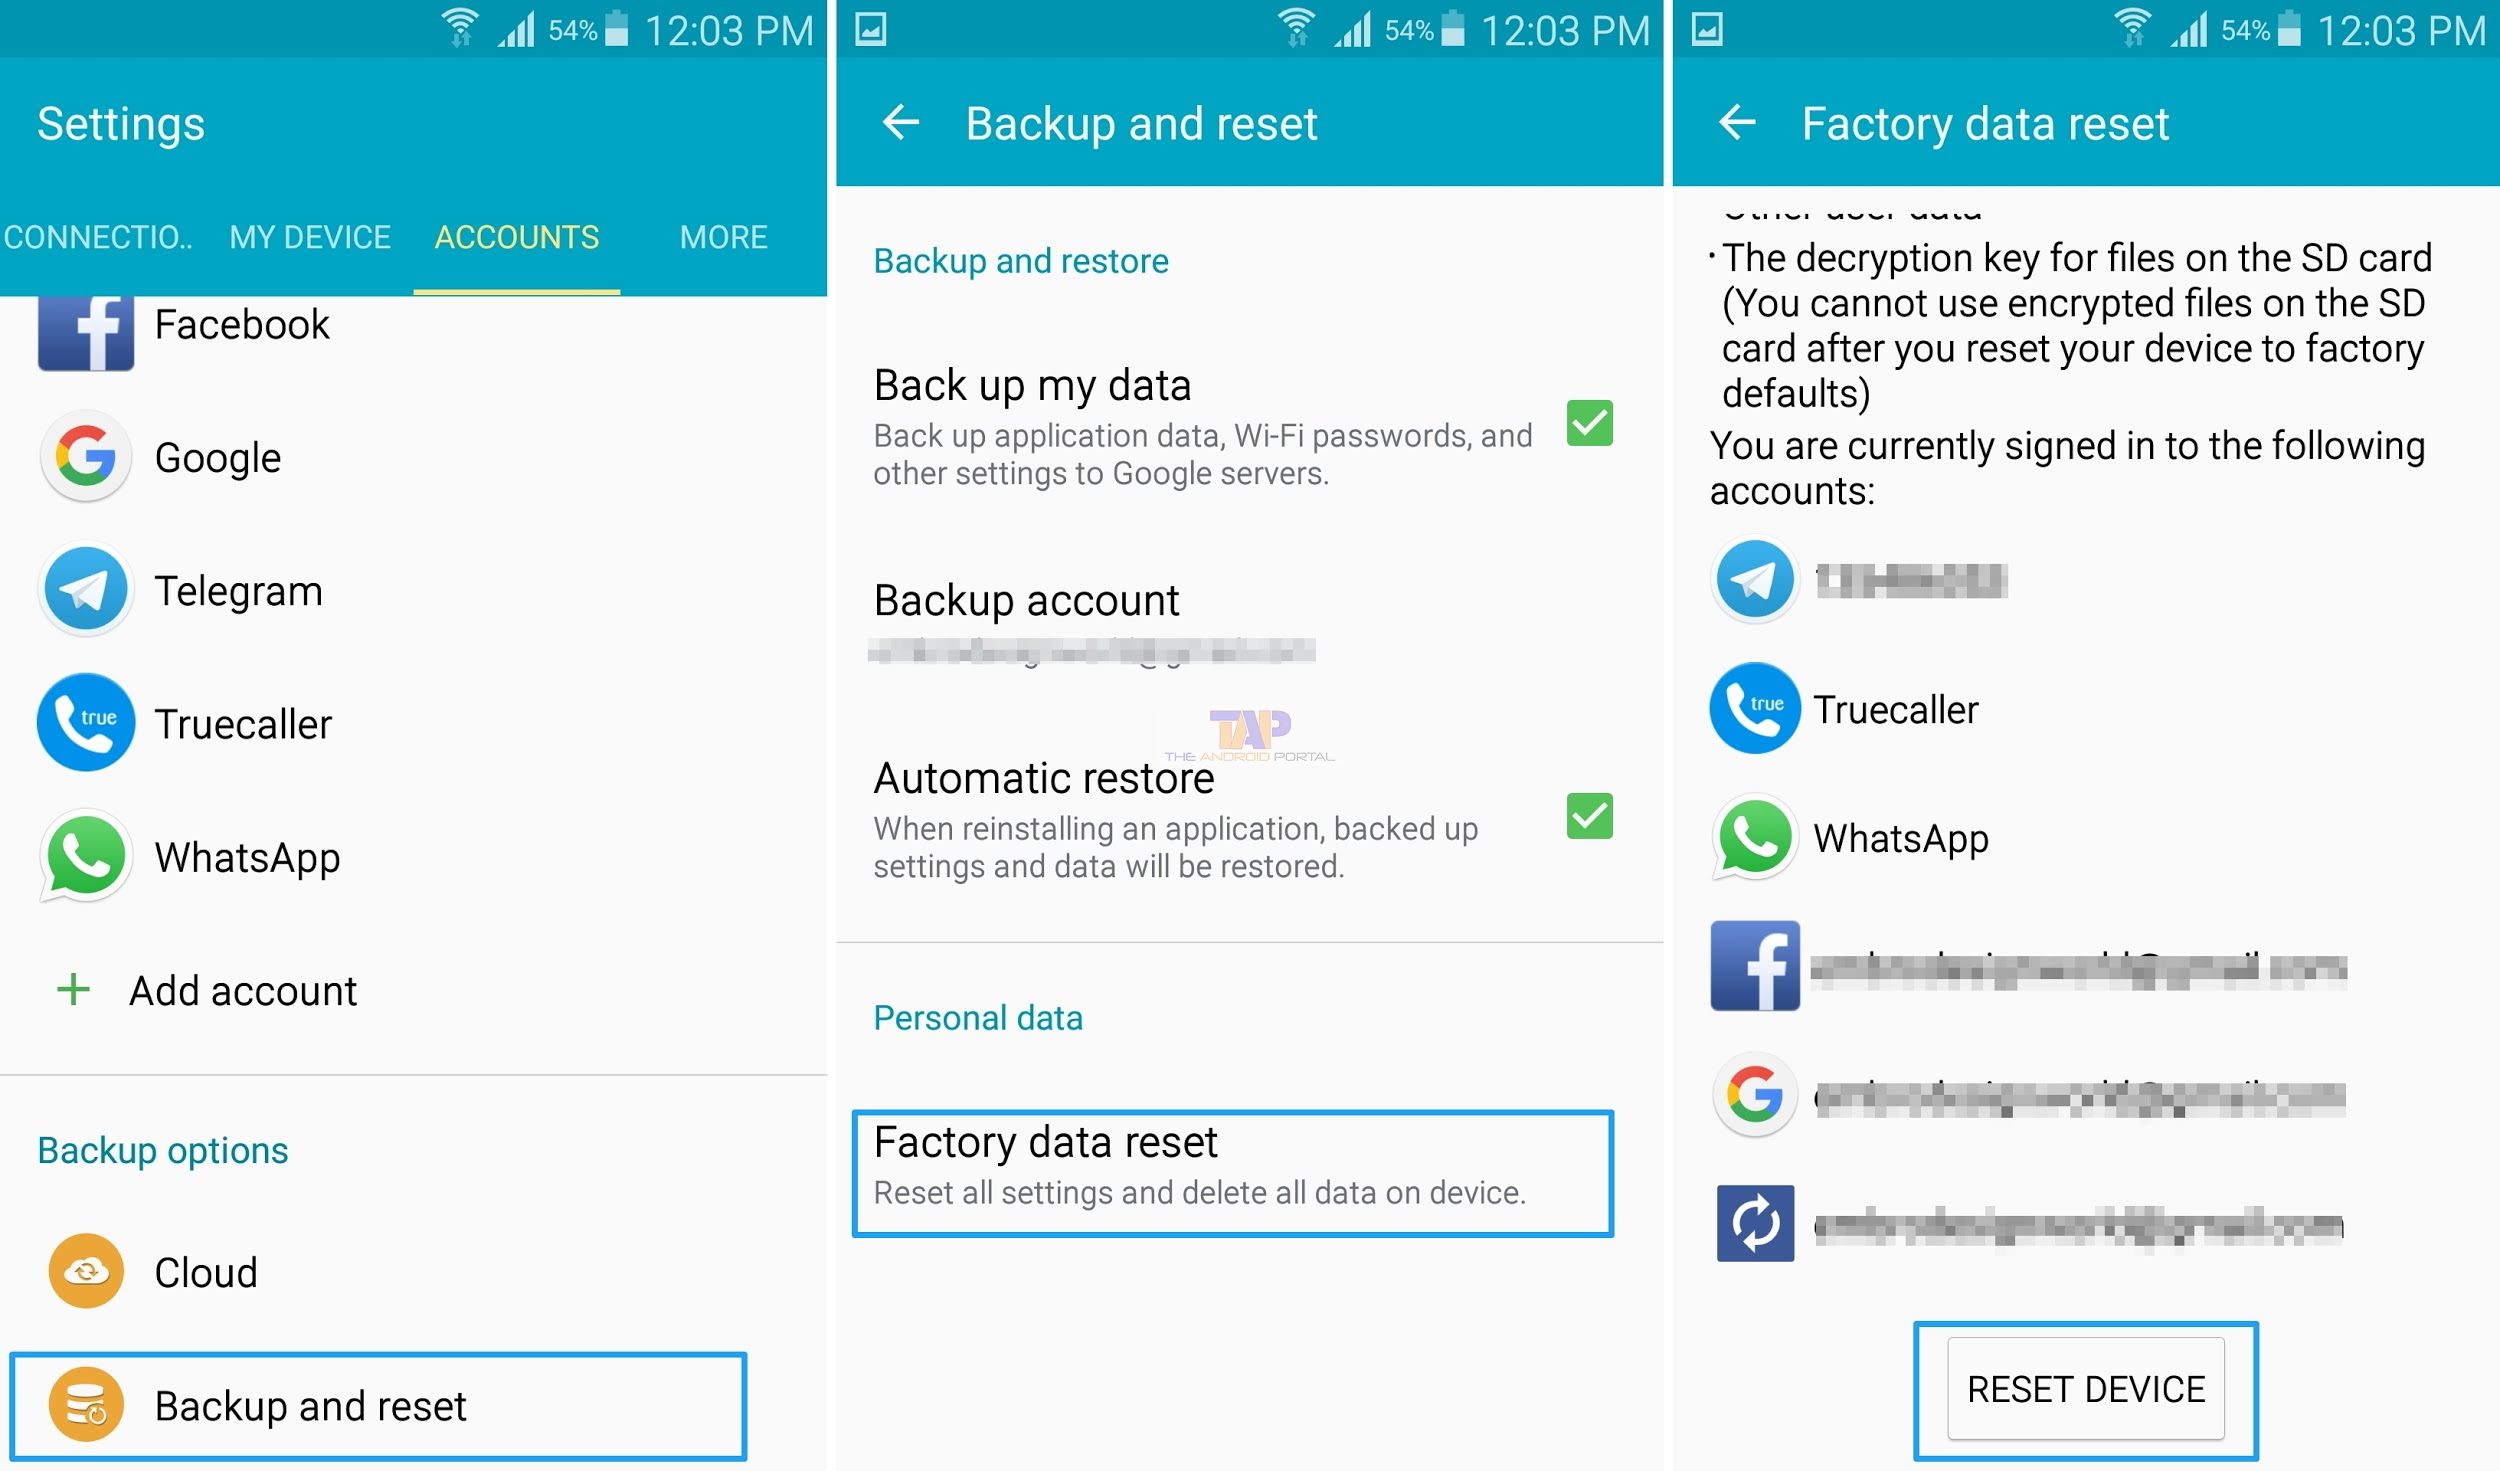 Reset your device to factory settings